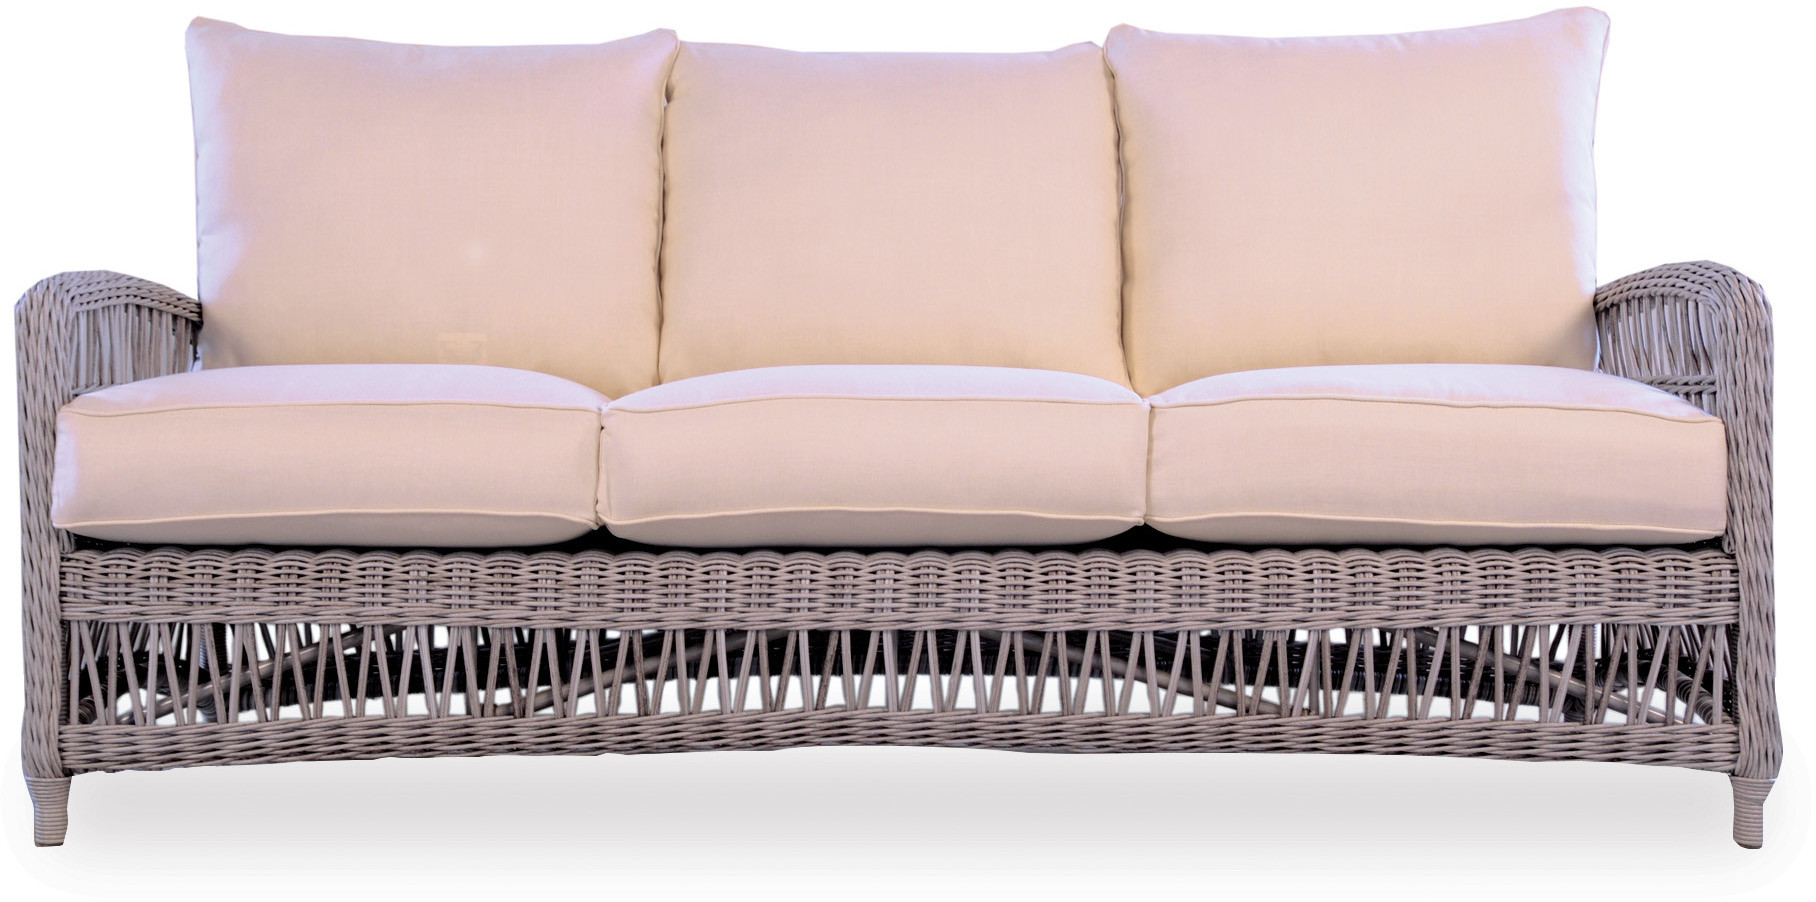 Lloyd Flanders Mackinac Wicker Furniture Collection